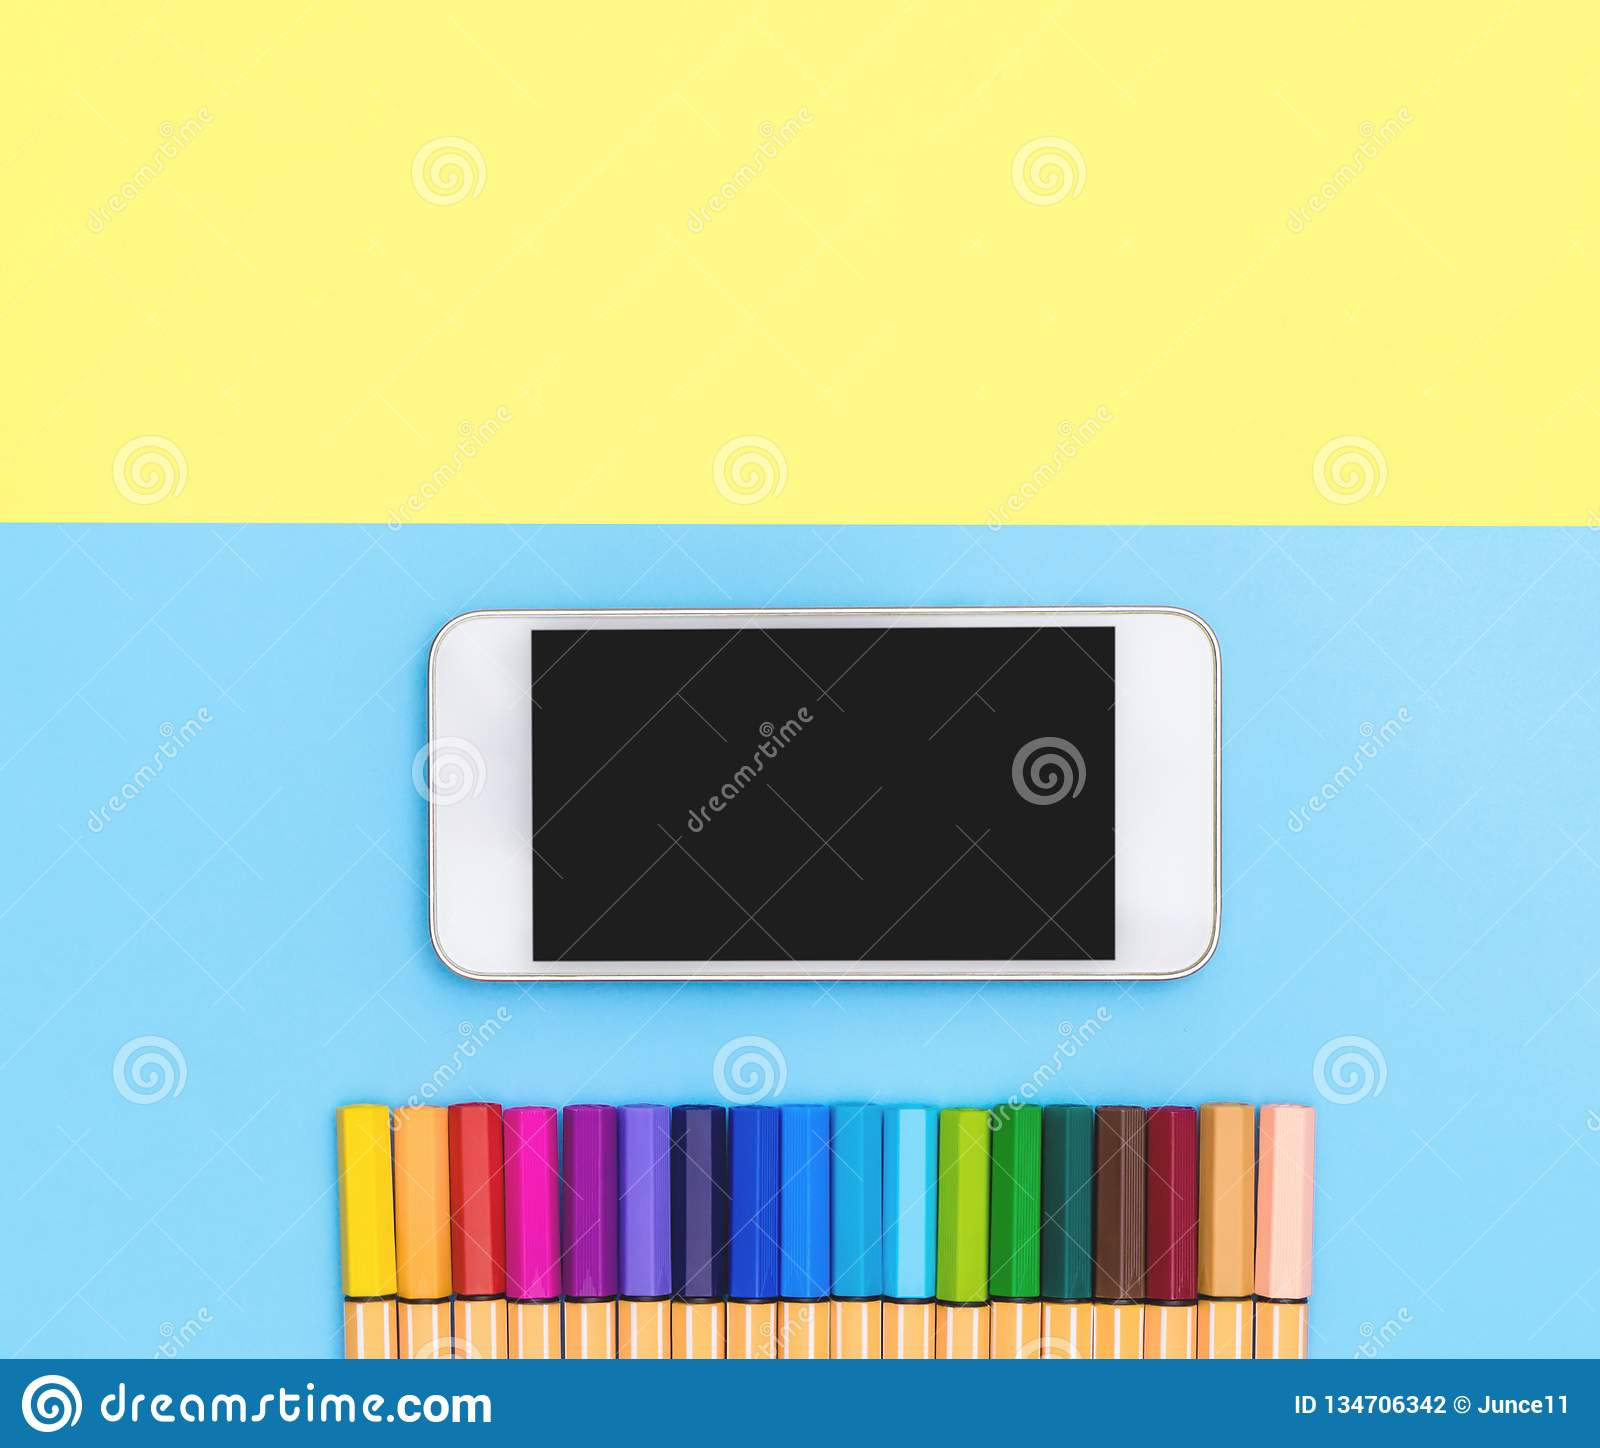 hight resolution of blank mobile phone and color marker pen line up on blue and yellow